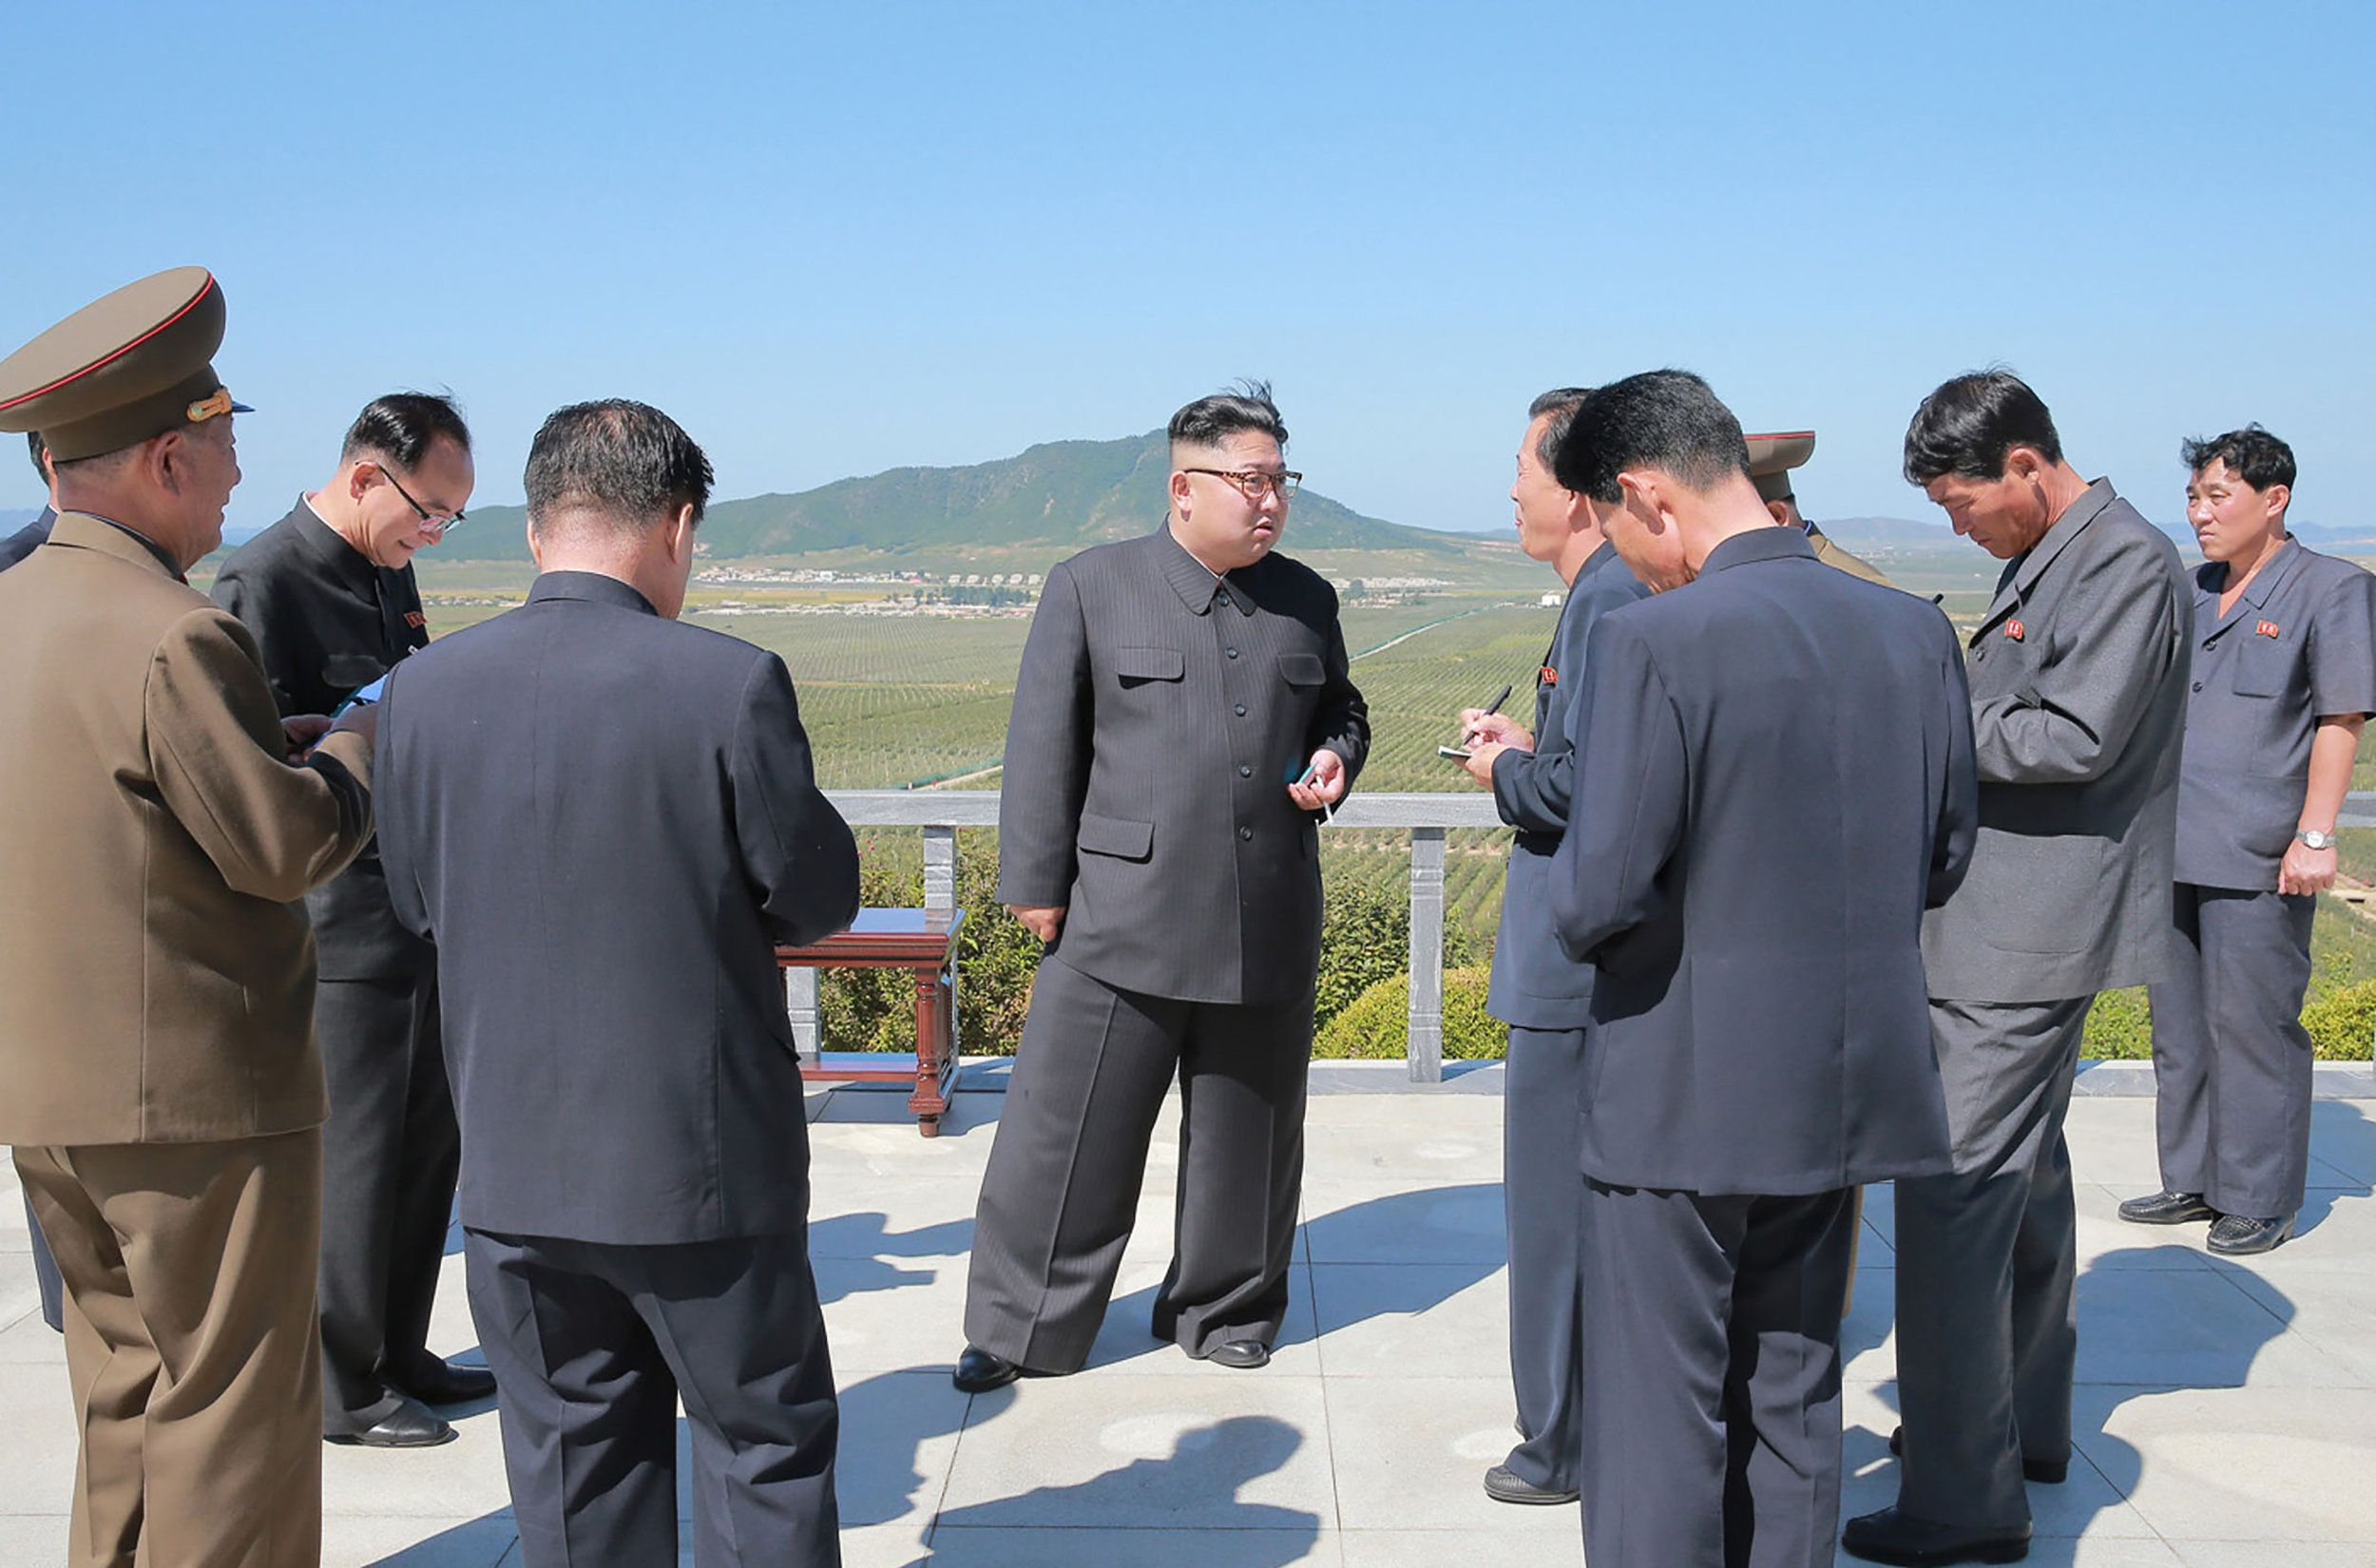 This undated picture released from North Korea's official Korean Central News Agency (KCNA) on September 21, 2017 shows North Korean leader Kim Jong-Un watching products while visiting Kwail-?p County, South Hwanghae Province. / AFP PHOTO / KCNA VIS KNS AND AFP PHOTO / STR / South Korea OUT / REPUBLIC OF KOREA OUT   ---EDITORS NOTE--- RESTRICTED TO EDITORIAL USE - MANDATORY CREDIT 'AFP PHOTO/KCNA VIA KNS' - NO MARKETING NO ADVERTISING CAMPAIGNS - DISTRIBUTED AS A SERVICE TO CLIENTS THIS PICTURE WAS MADE AVAILABLE BY A THIRD PARTY. AFP CAN NOT INDEPENDENTLY VERIFY THE AUTHENTICITY, LOCATION, DATE AND CONTENT OF THIS IMAGE. THIS PHOTO IS DISTRIBUTED EXACTLY AS RECEIVED BY AFP.  /         (Photo credit should read STR/AFP/Getty Images)